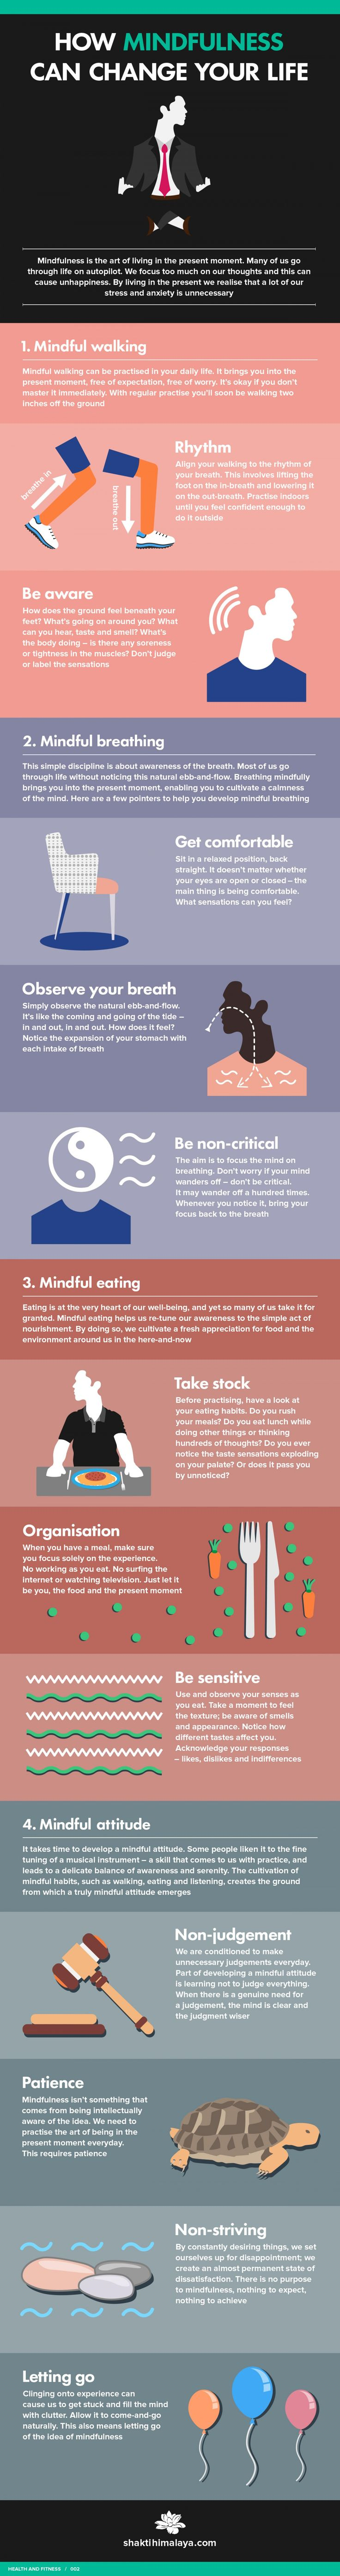 How Mindfulness Can Change Your Life (Infographic)-Infographics|Graphics Design|Data visualization|submit Infographics